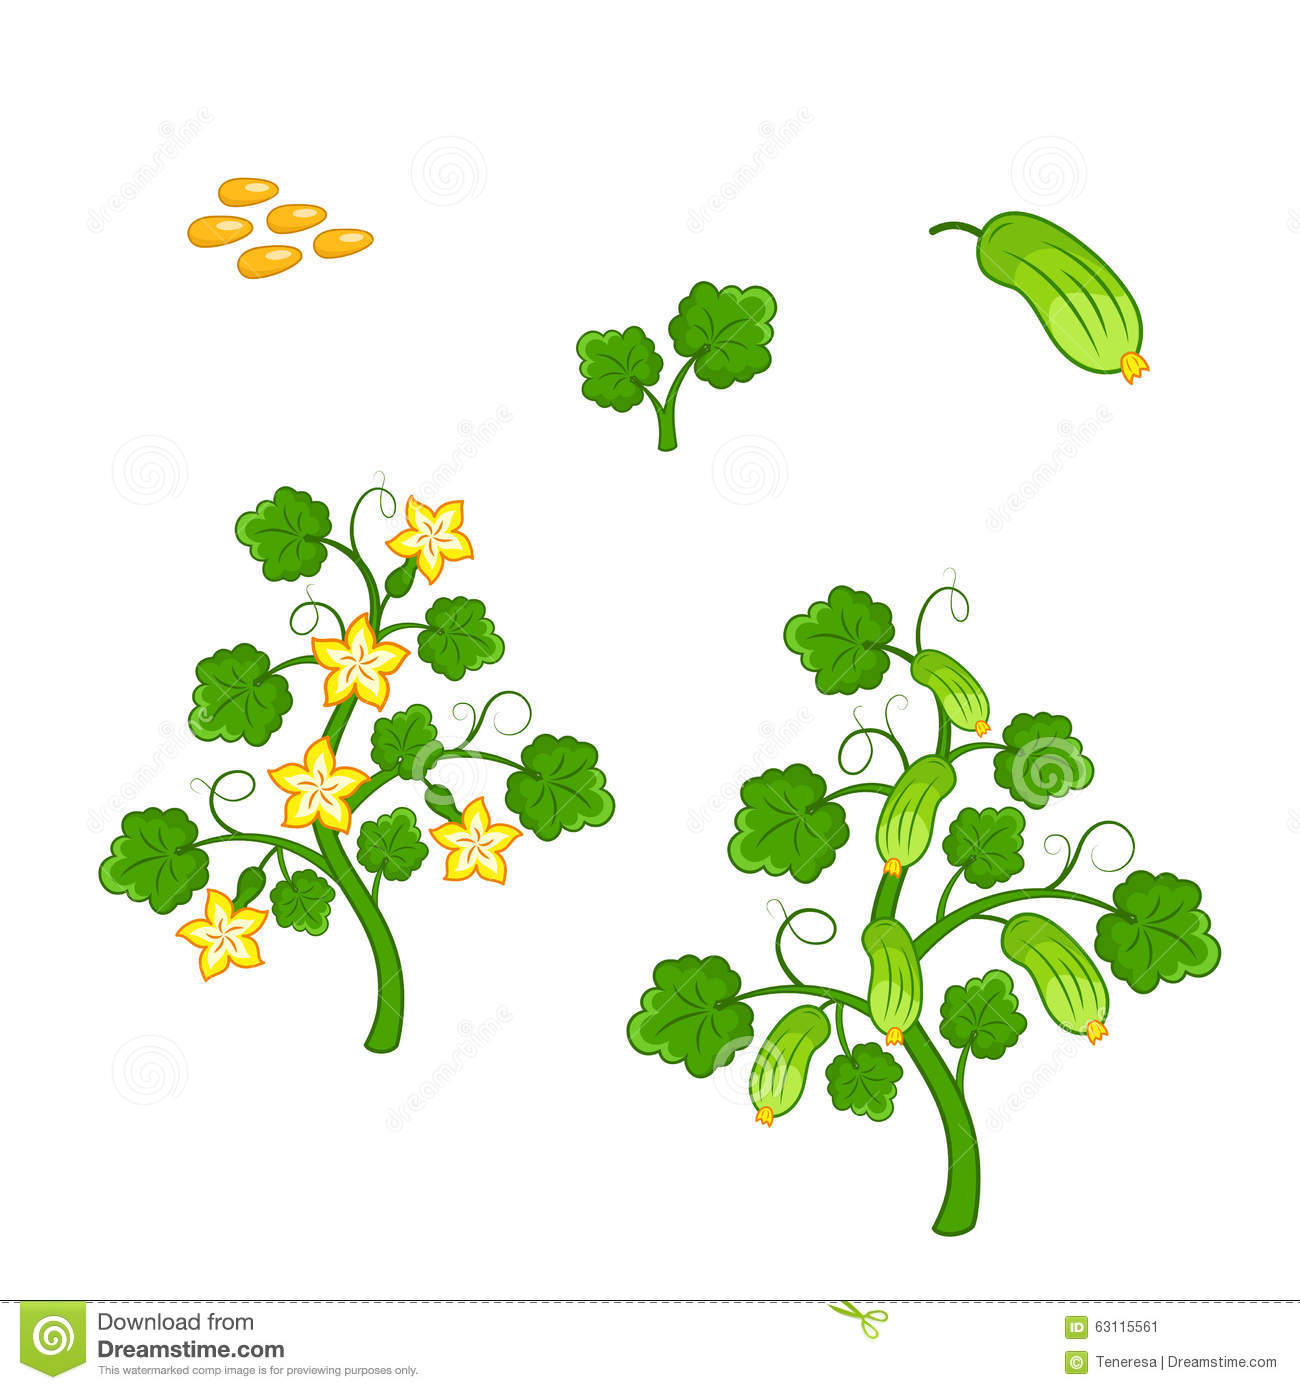 Cucumber Plant With Seeds And Flowers Stock Vector.